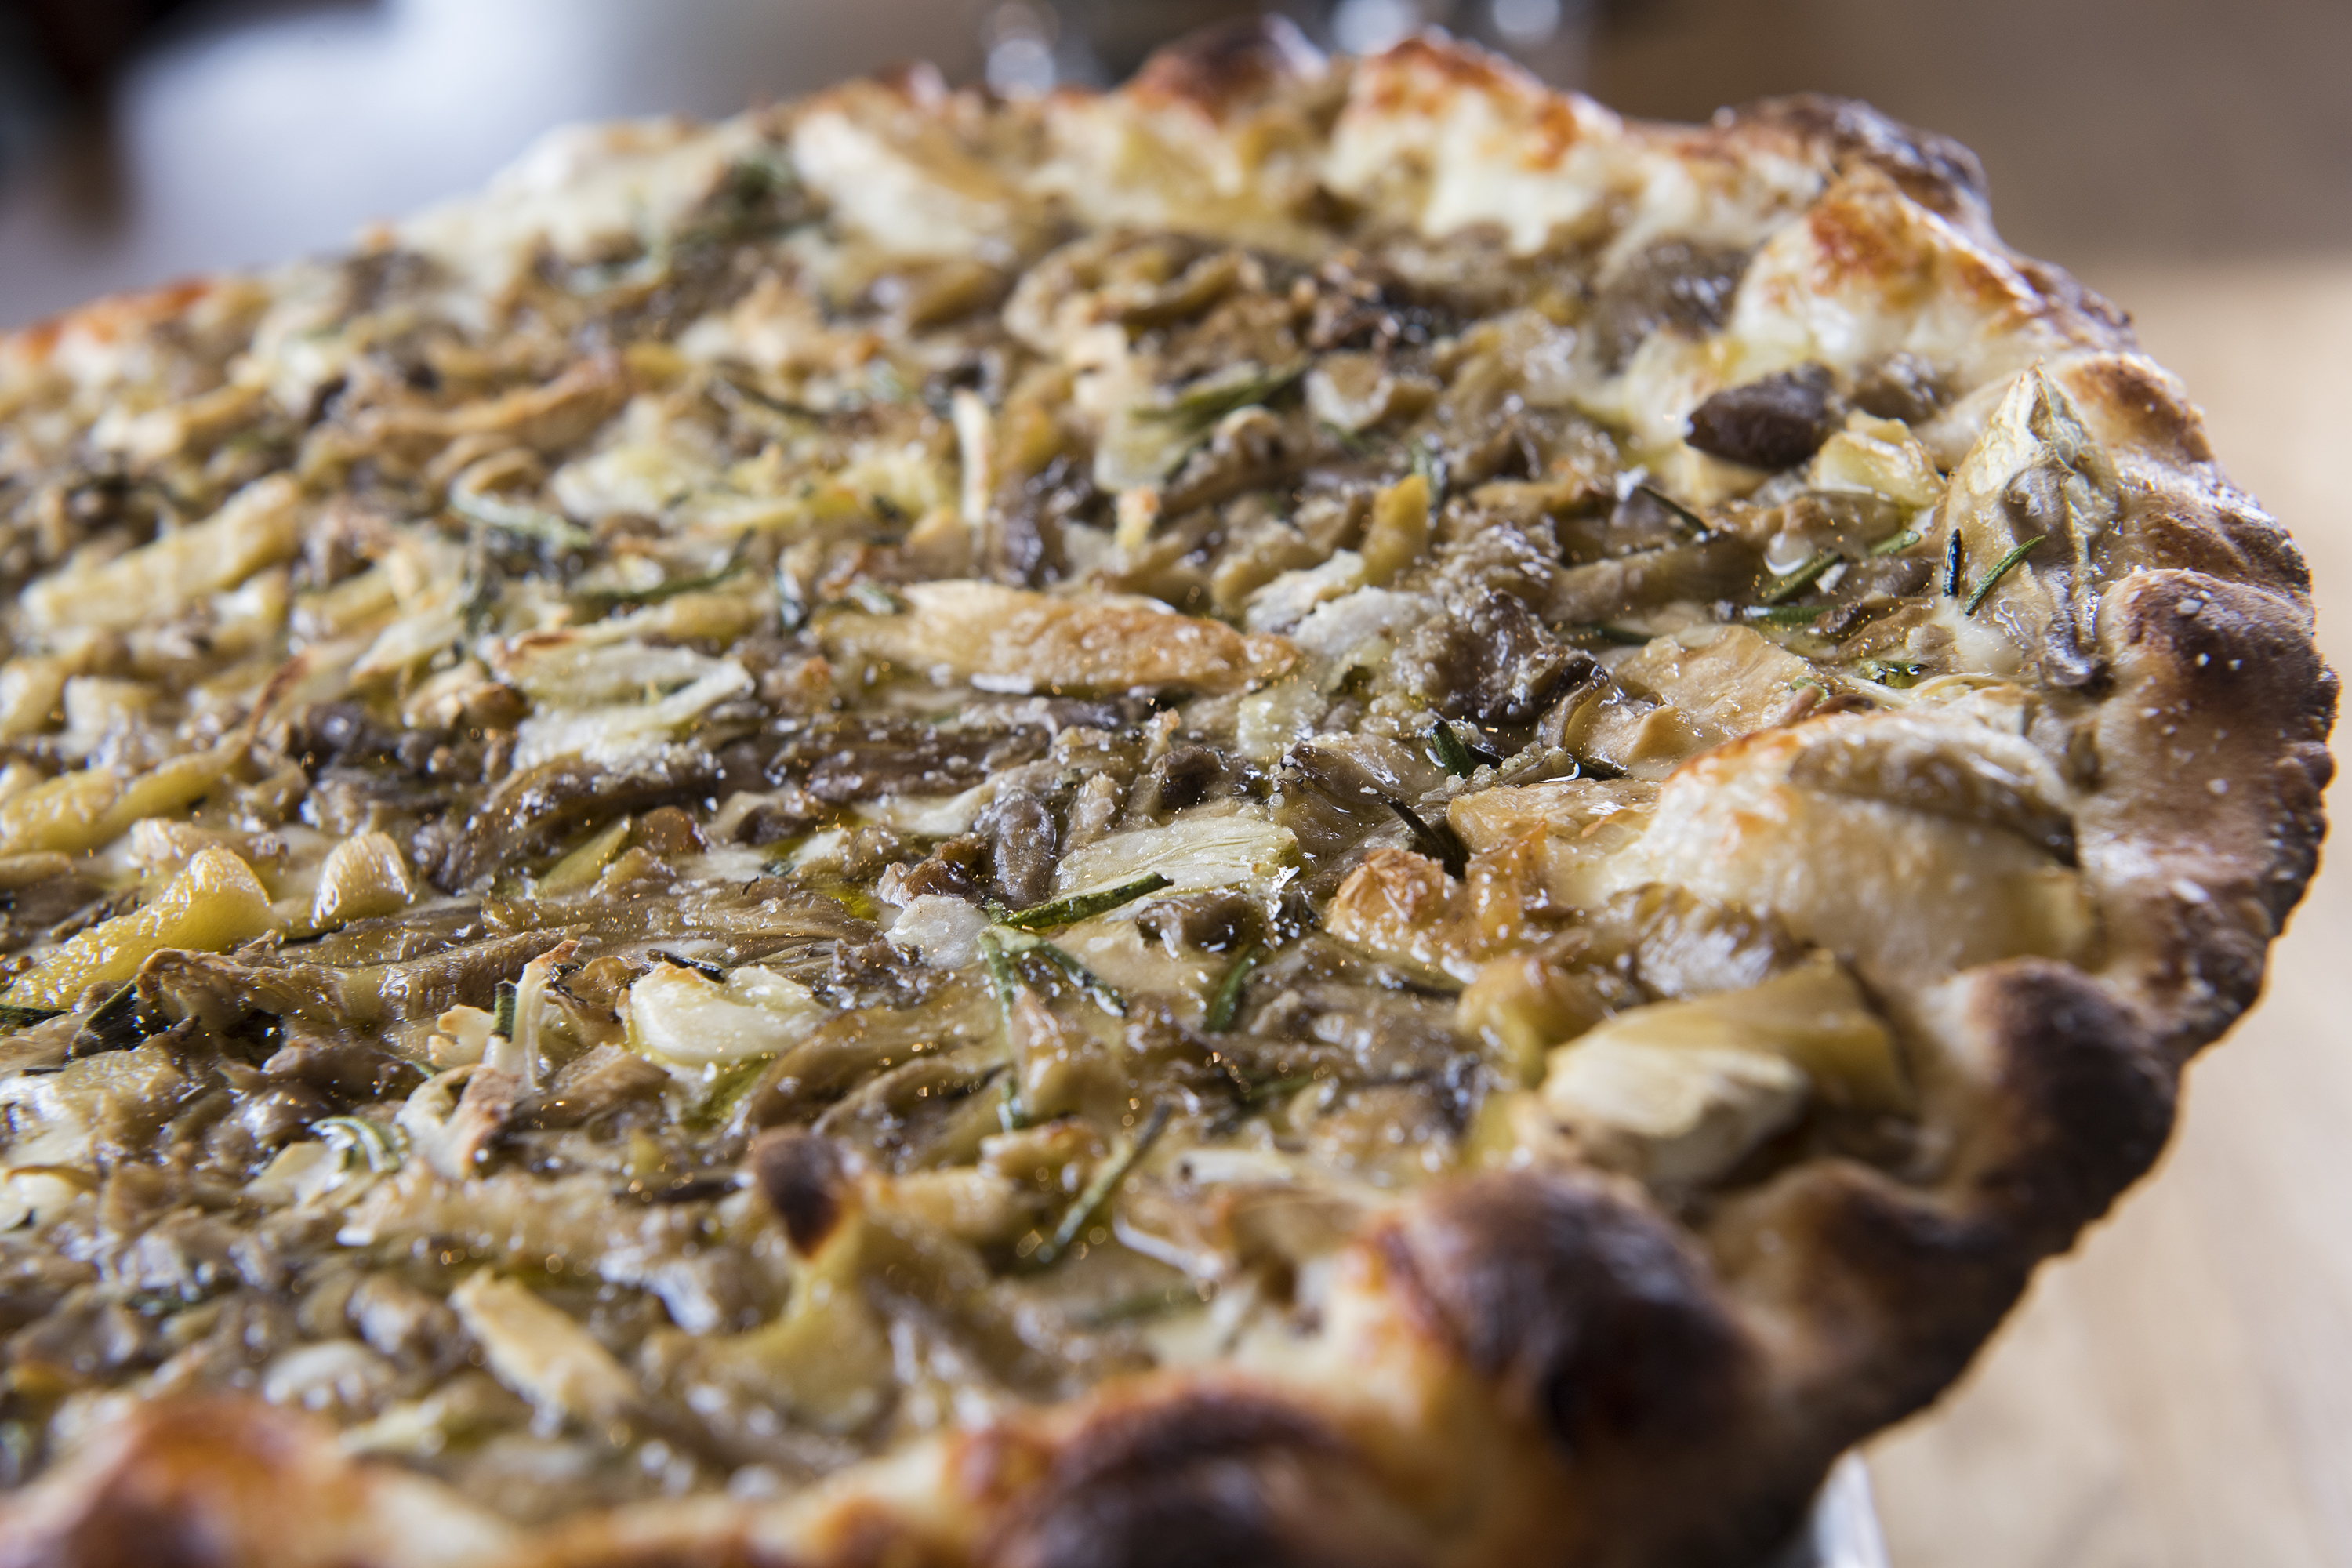 The pies are coal-fired at Black Sheep Pizza. Photo by Issac Hale.